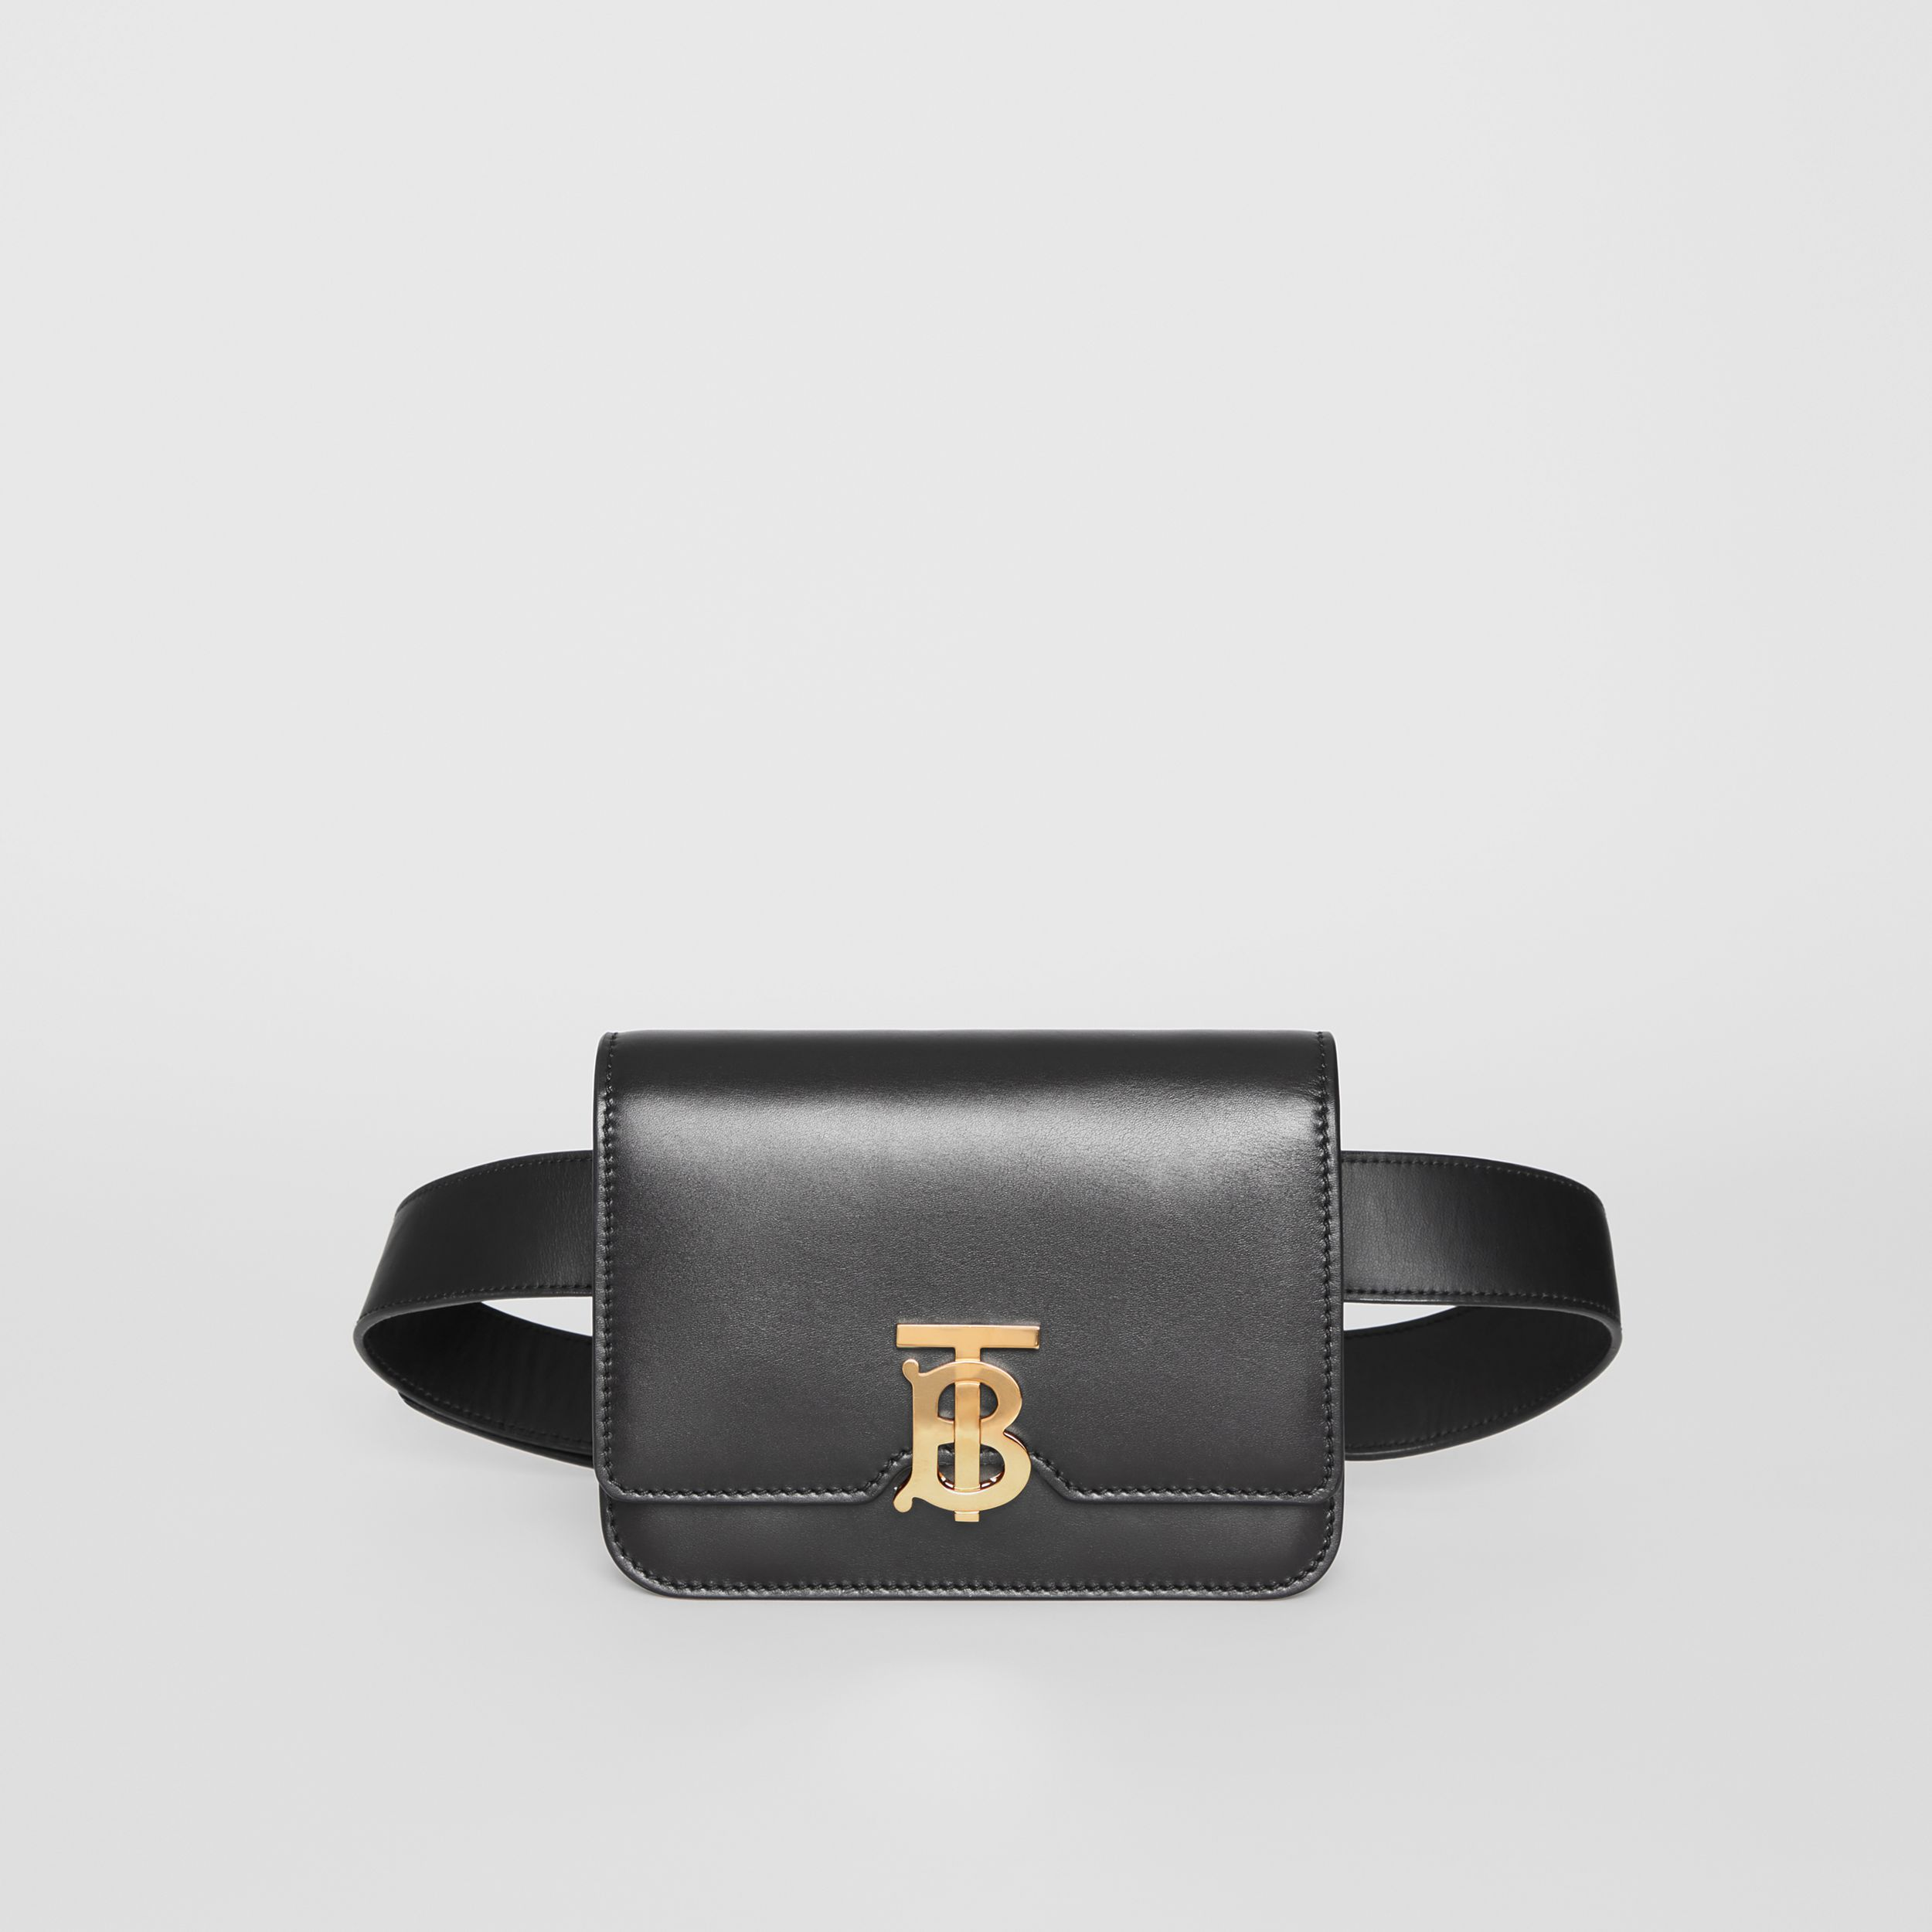 Belted Leather TB Bag in Black - Women | Burberry - 1